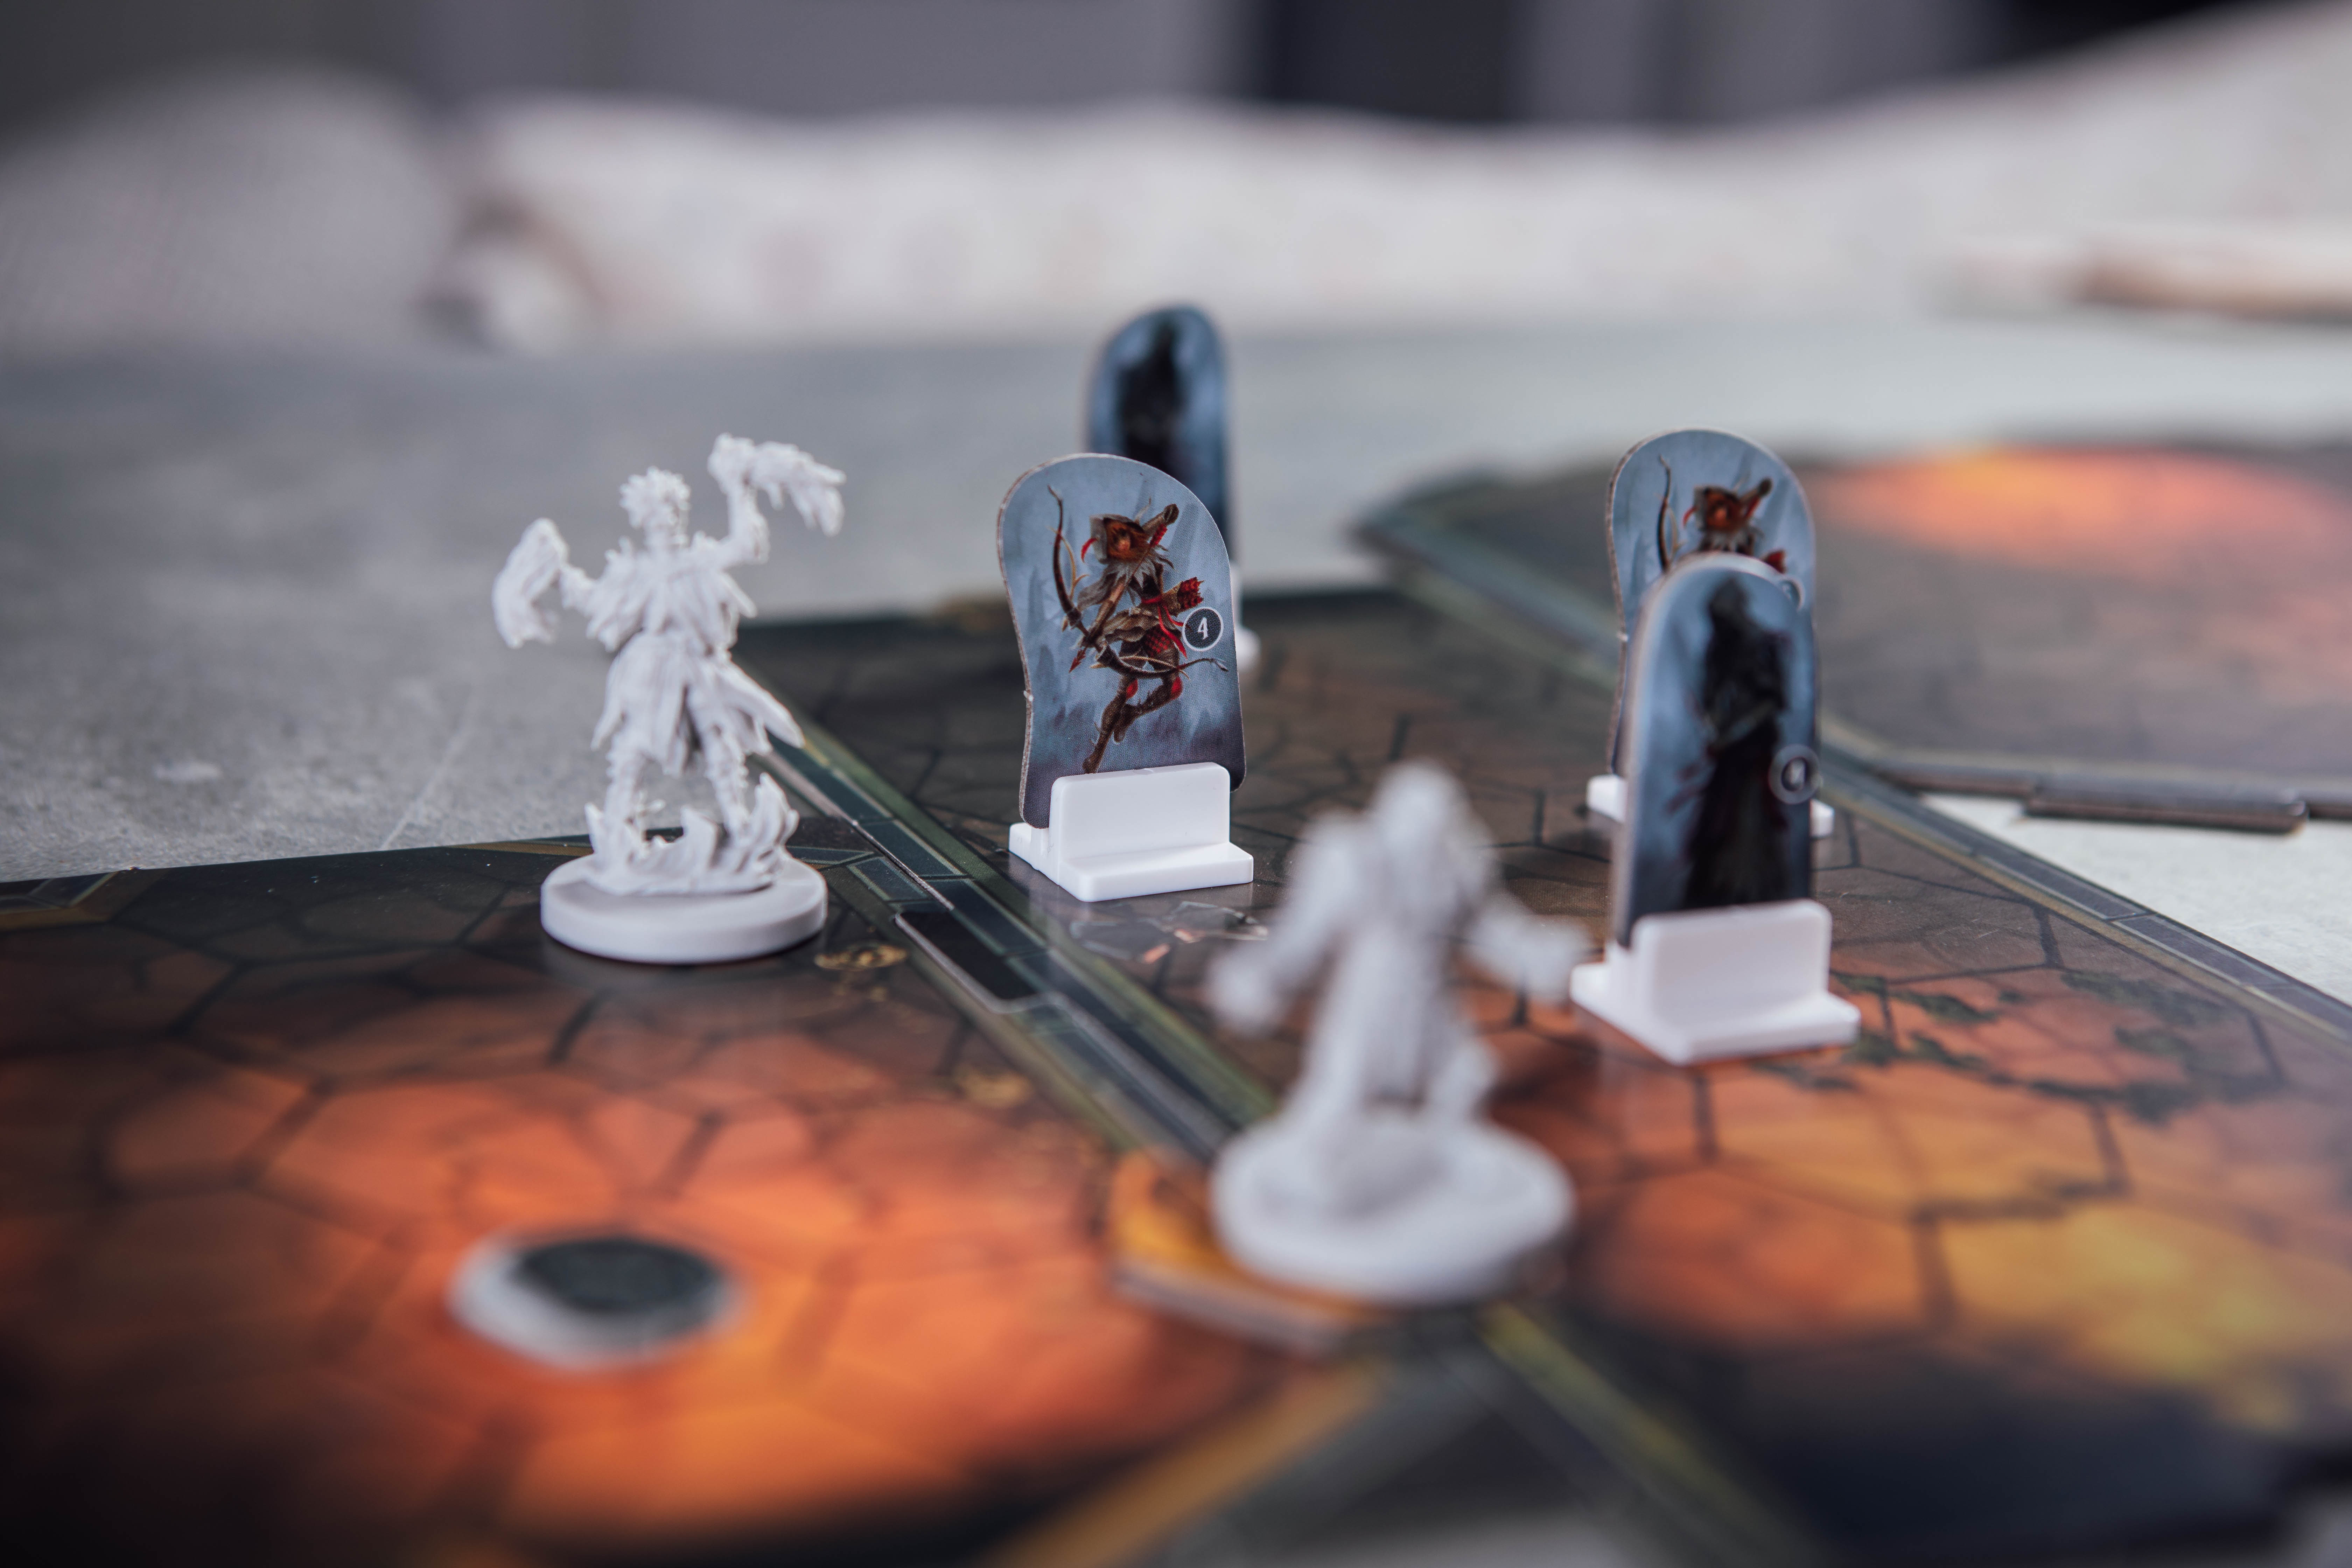 Gloomhaven Crypt of the Damned second room outnumbered